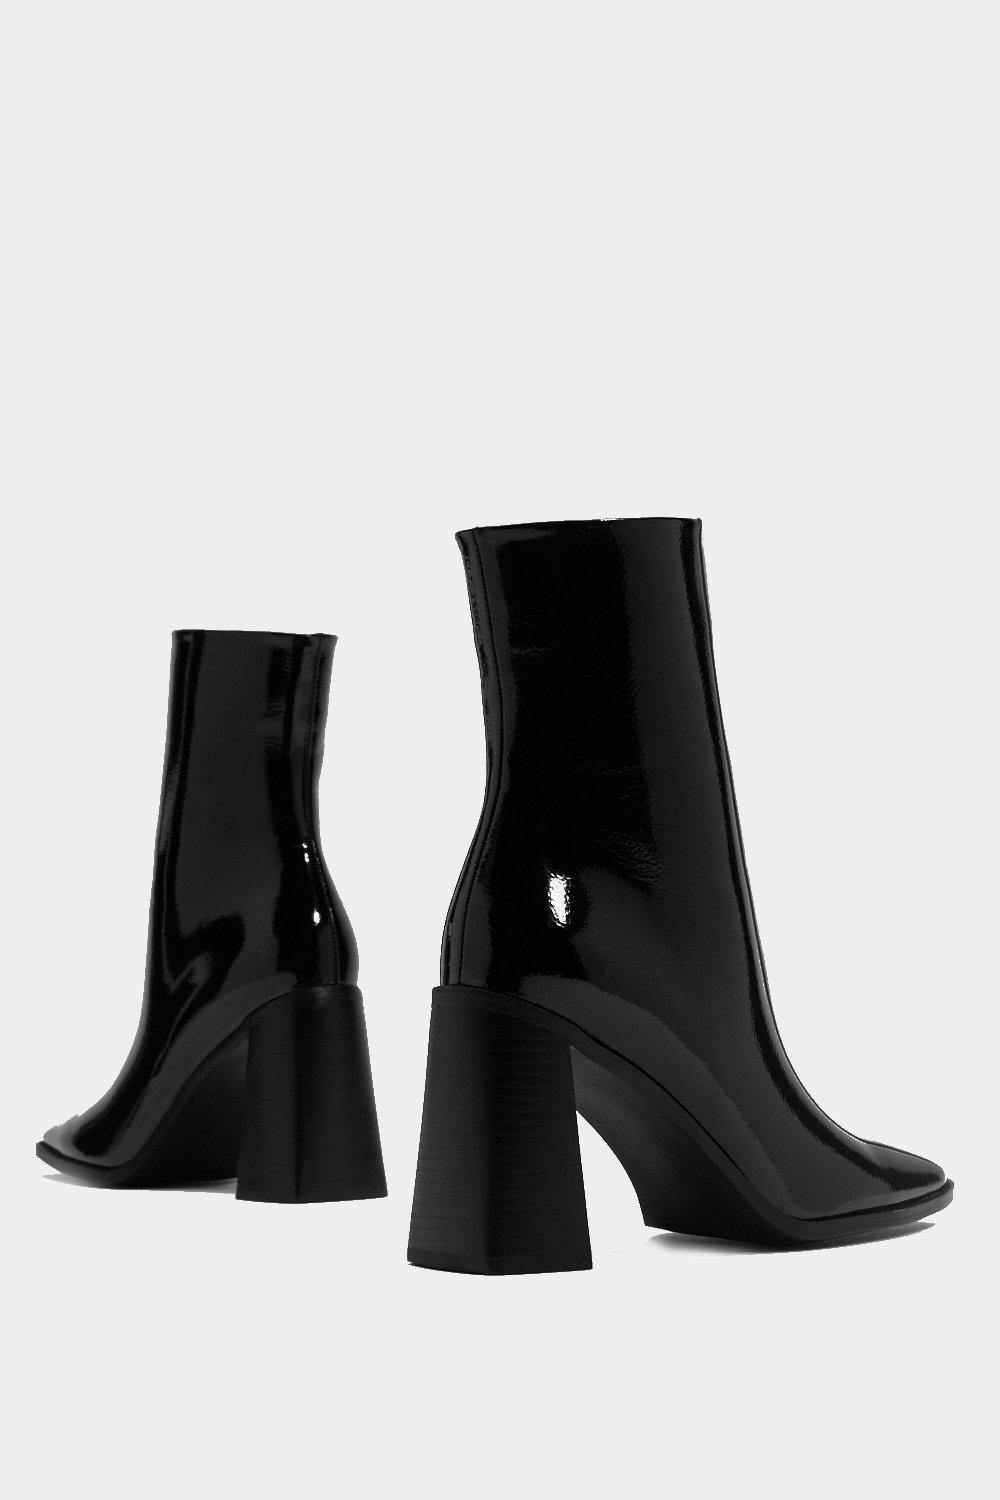 3addec12af44e Square Up Patent Faux Leather Boot | Shop Clothes at Nasty Gal!